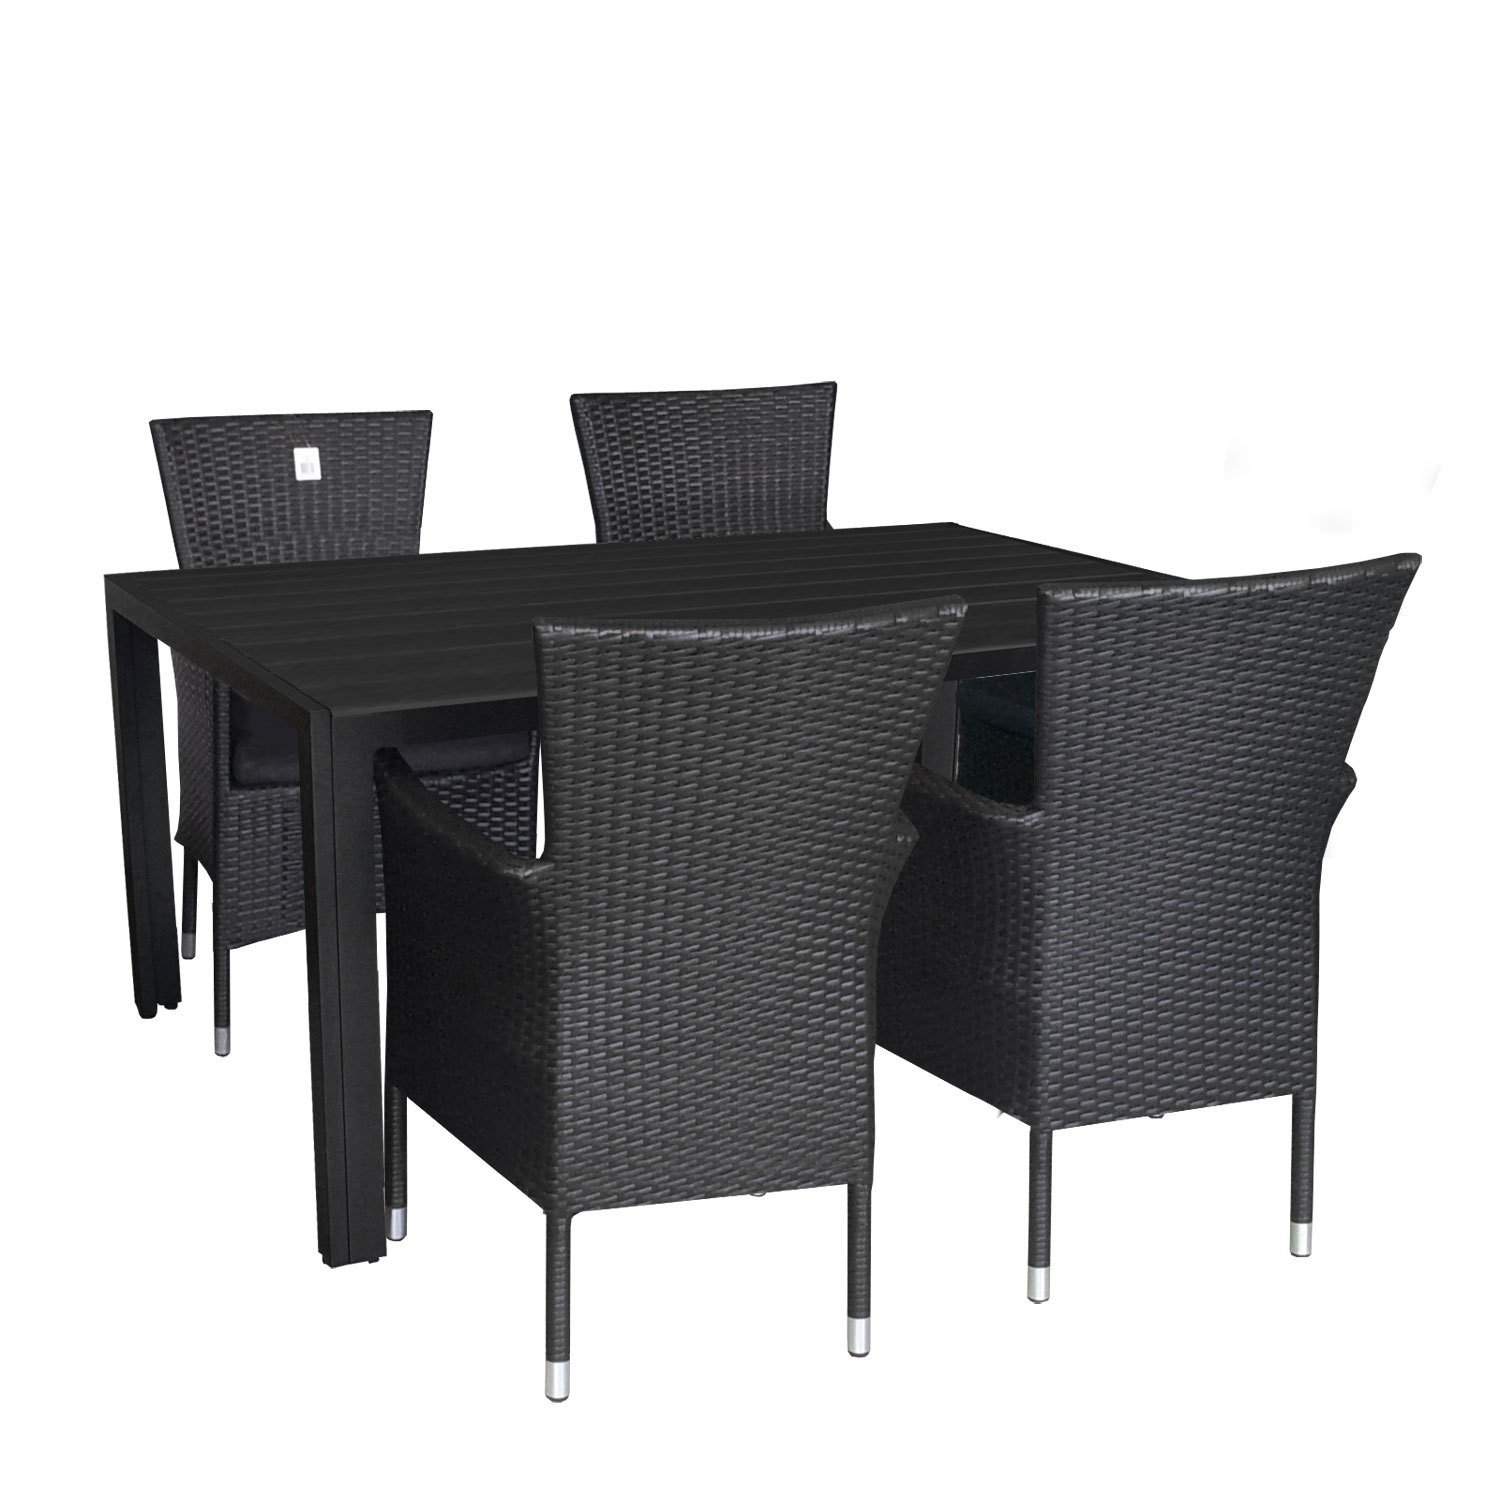 5tlg gartengarnitur terrassenm bel set aluminium polywood tisch 150x90cm alu poly rattan sessel. Black Bedroom Furniture Sets. Home Design Ideas